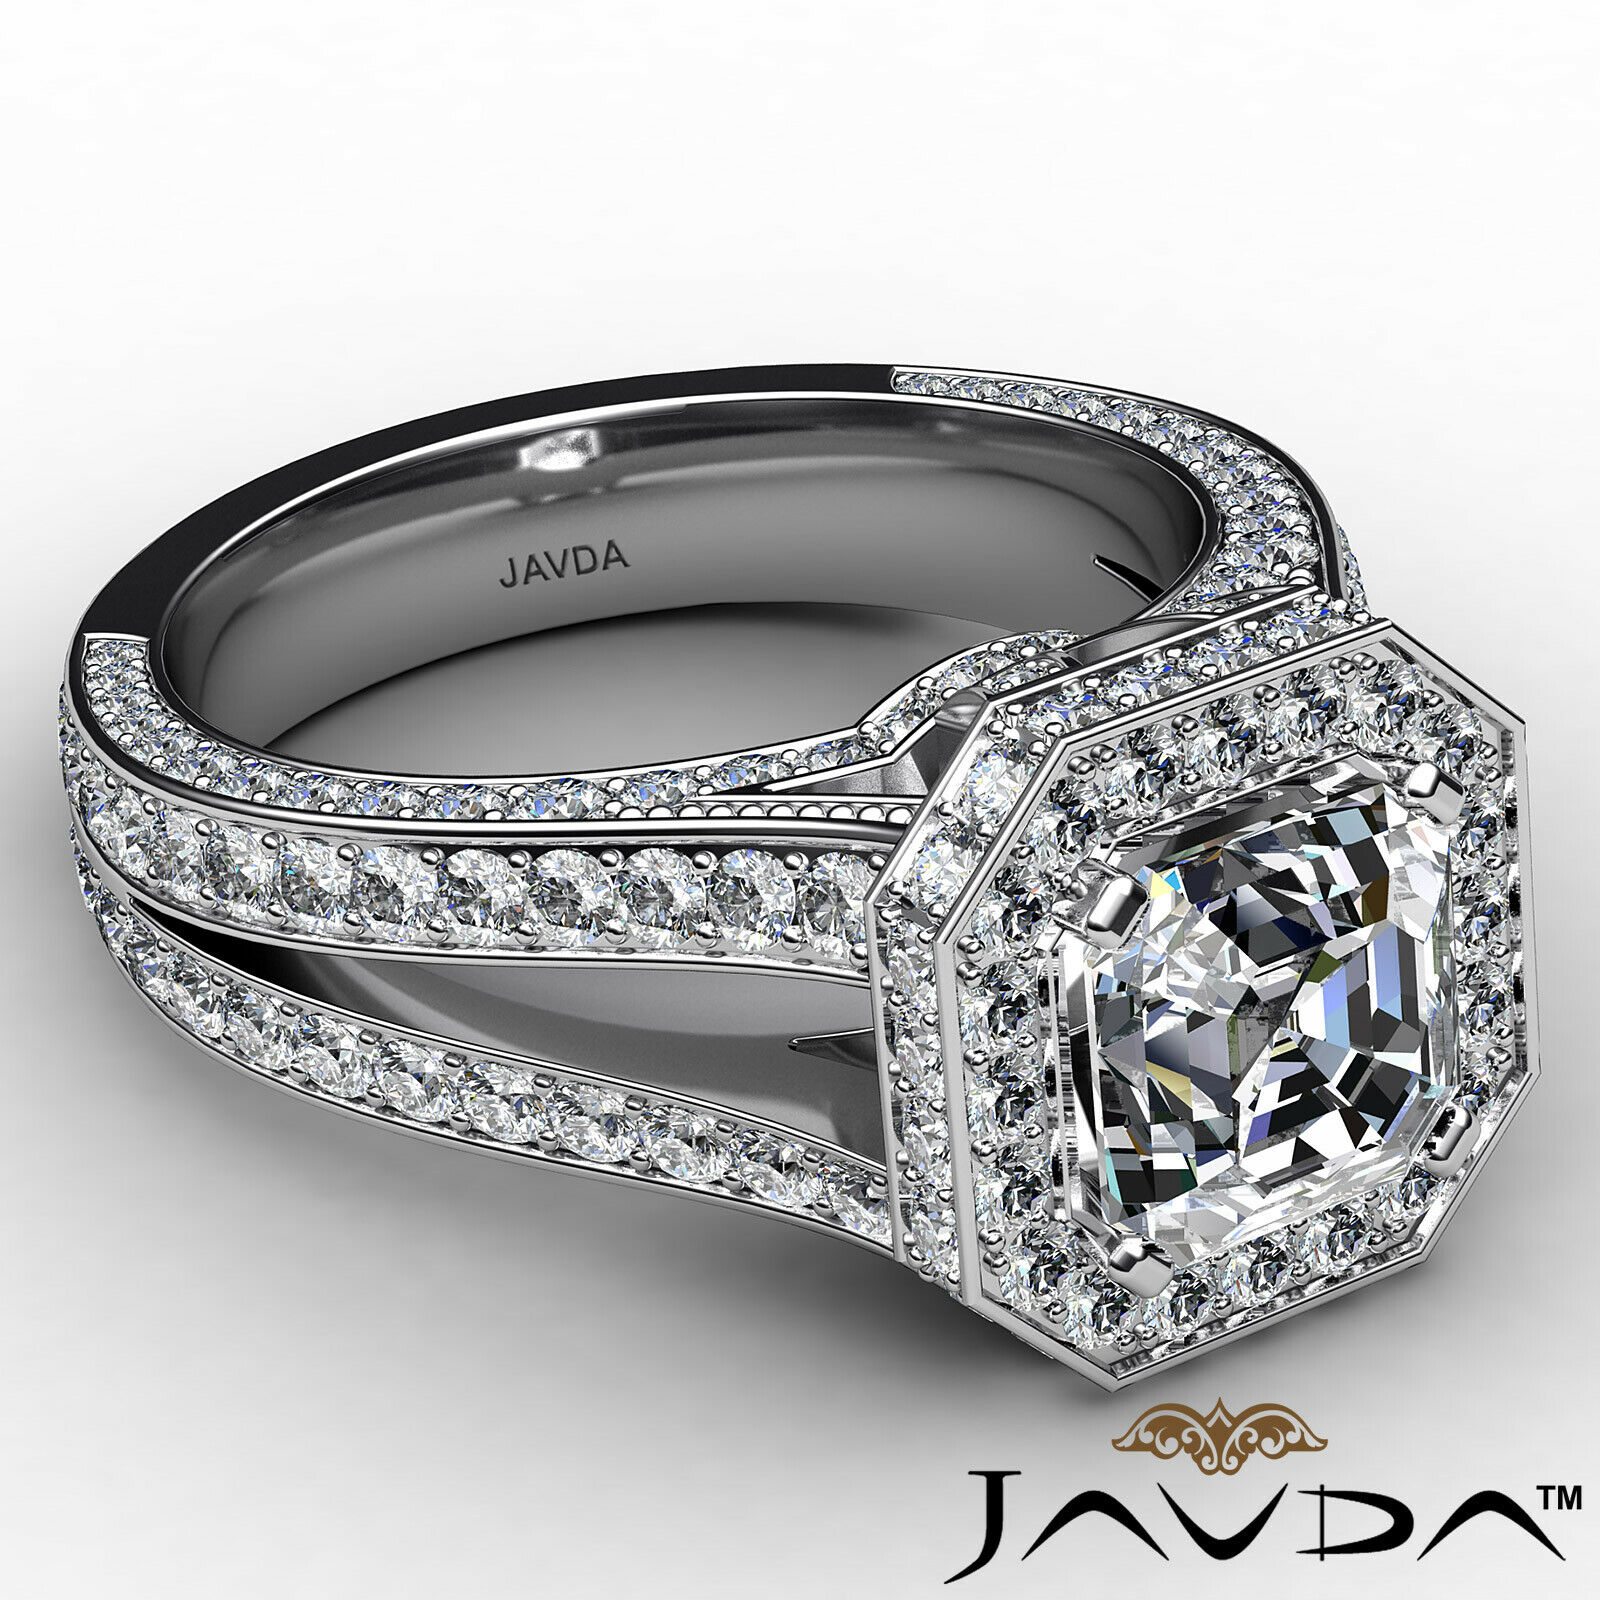 Halo Asscher Diamond Engagement Ring GIA Certified G Color & SI2 clarity 2.4 ctw 6